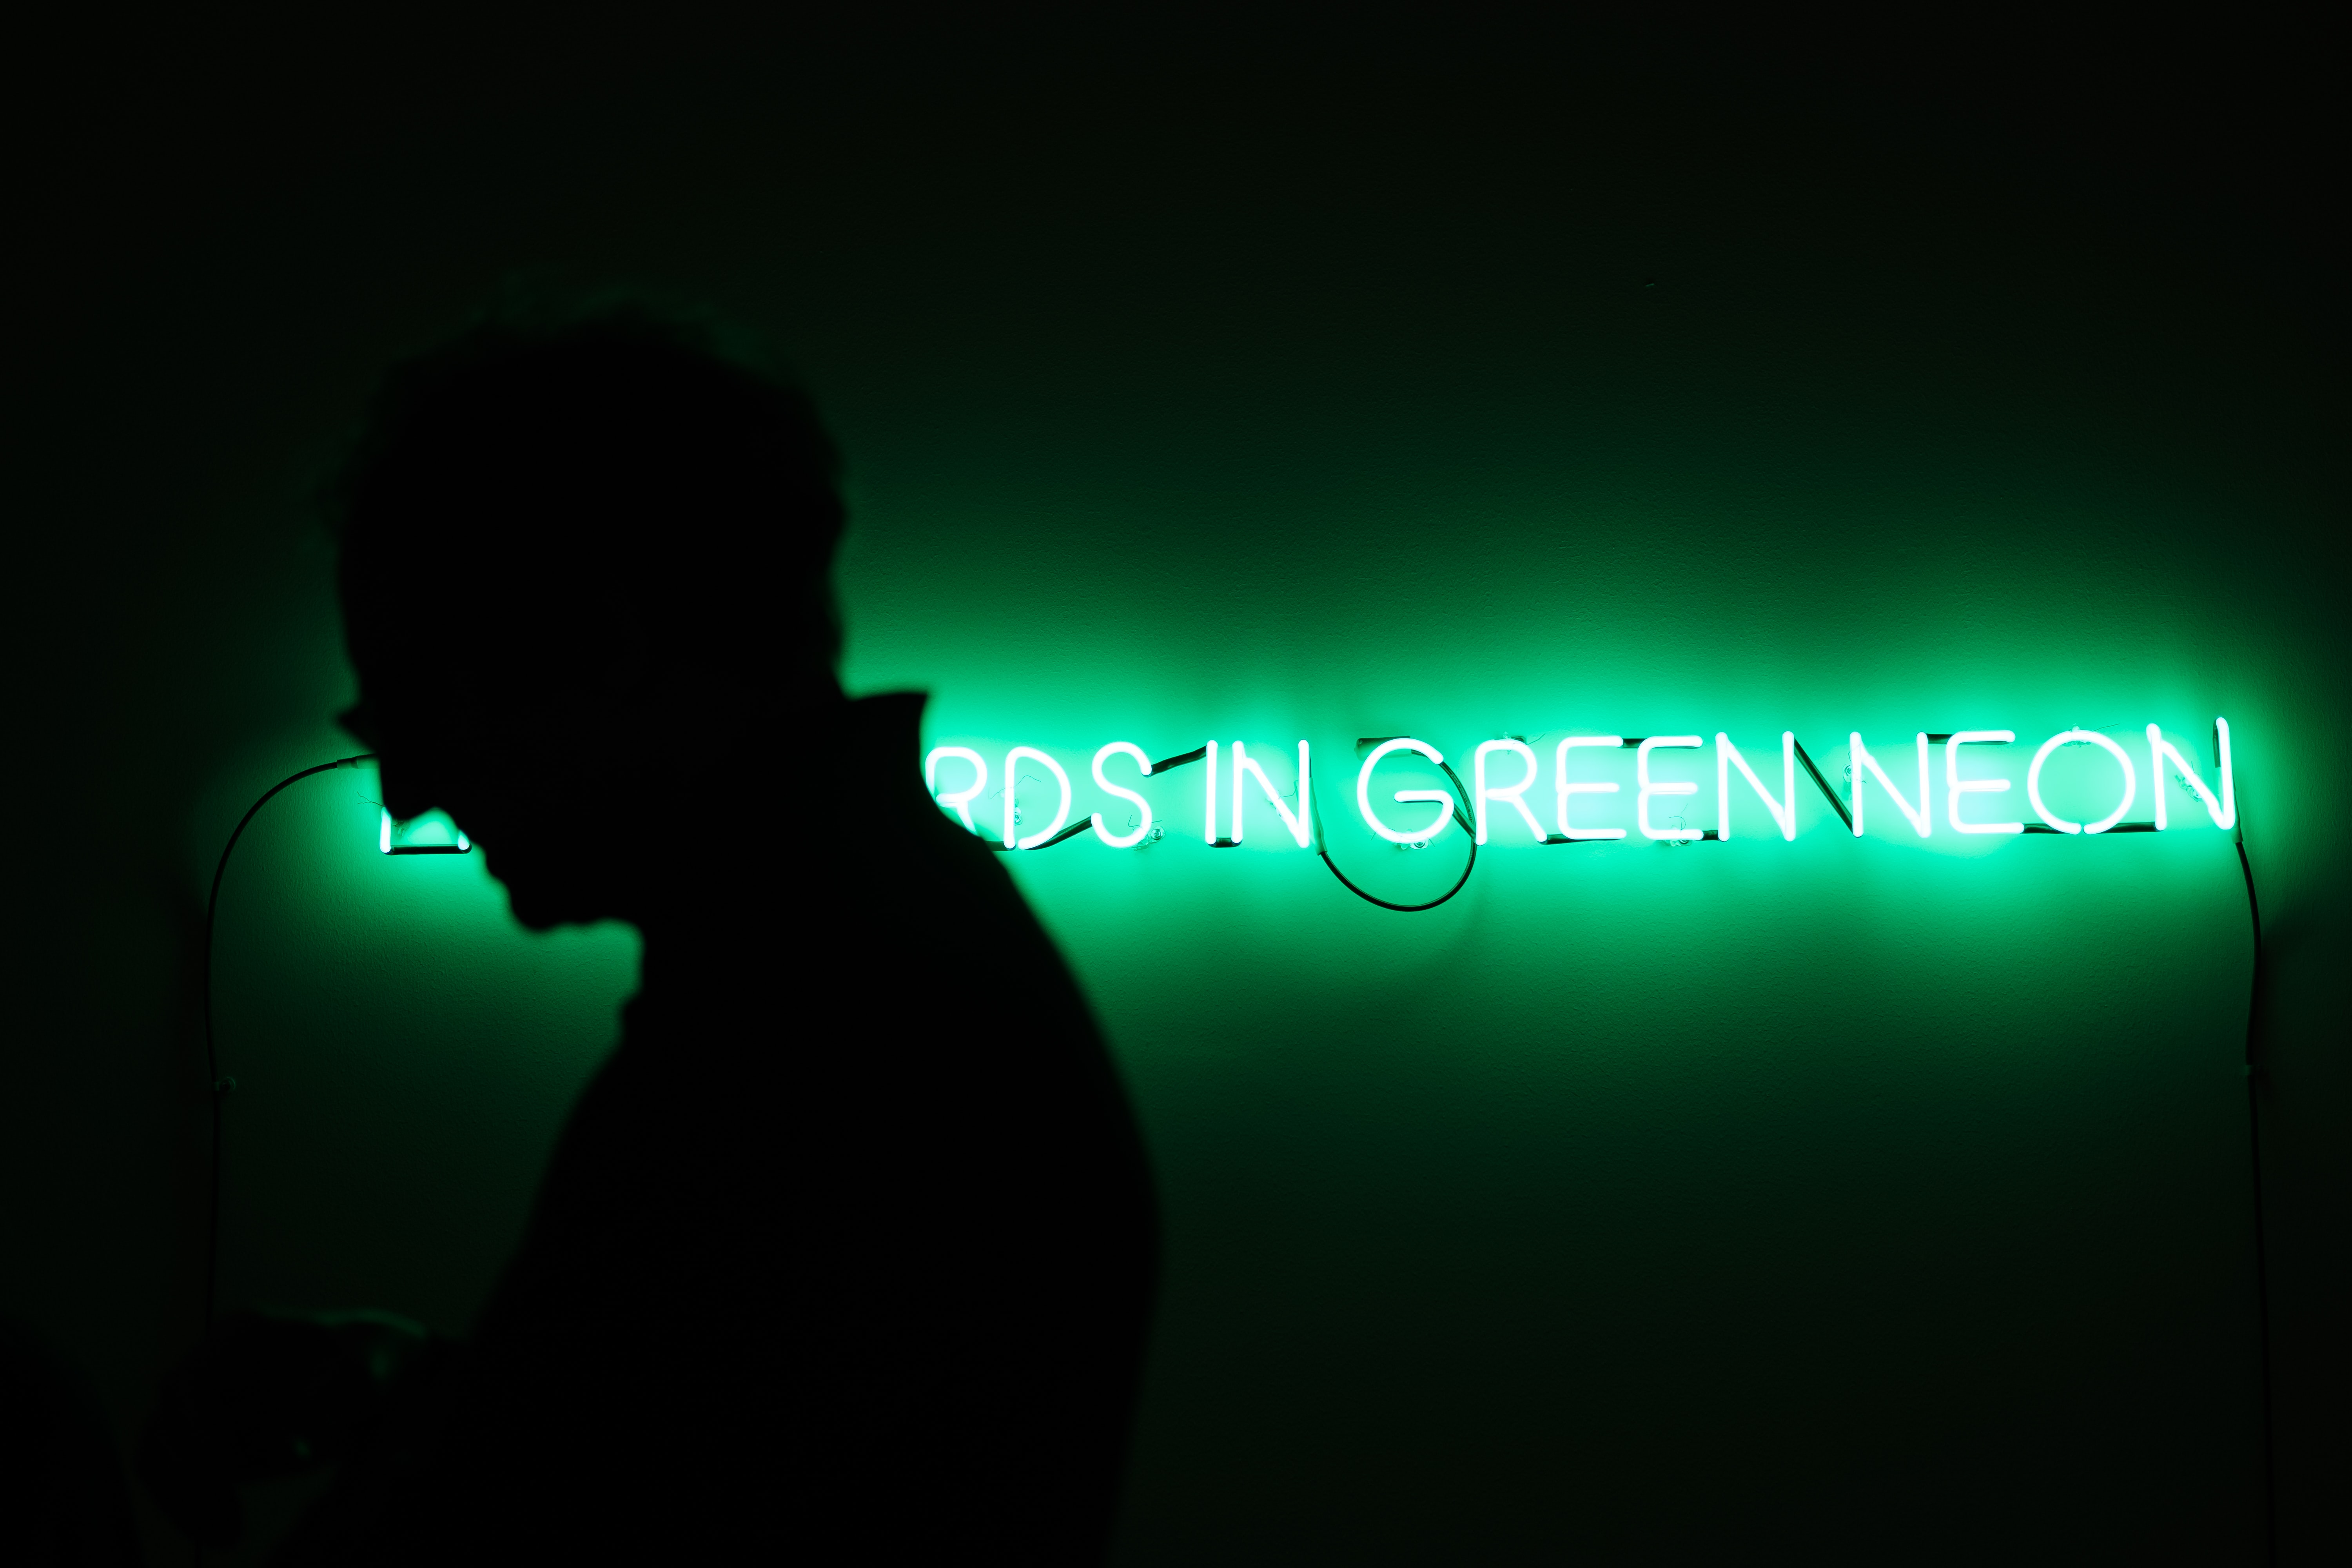 green and white LED light